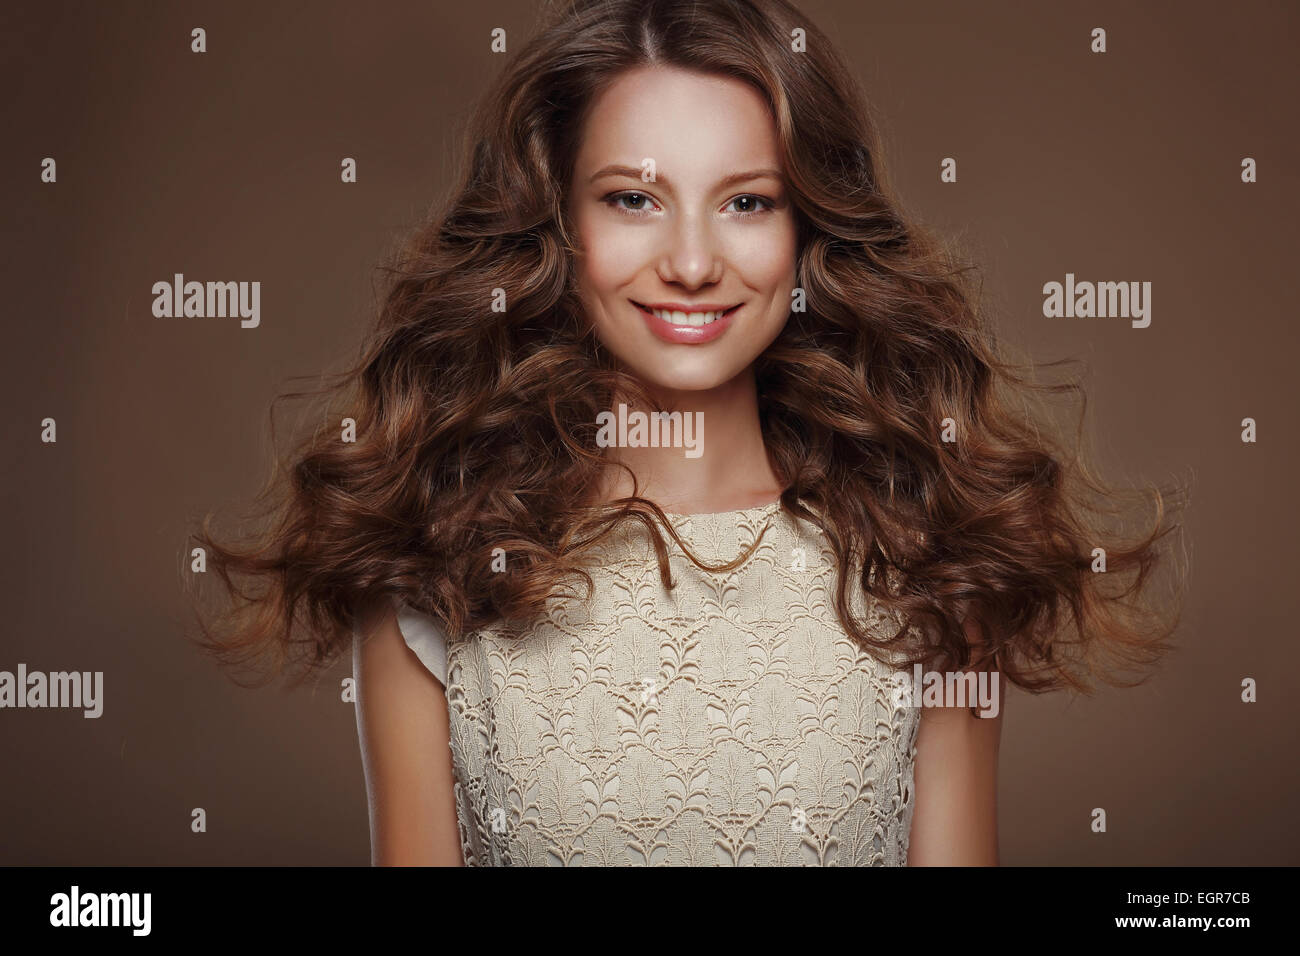 Beautiful Happy Brunette avec de longs poils frisés Photo Stock